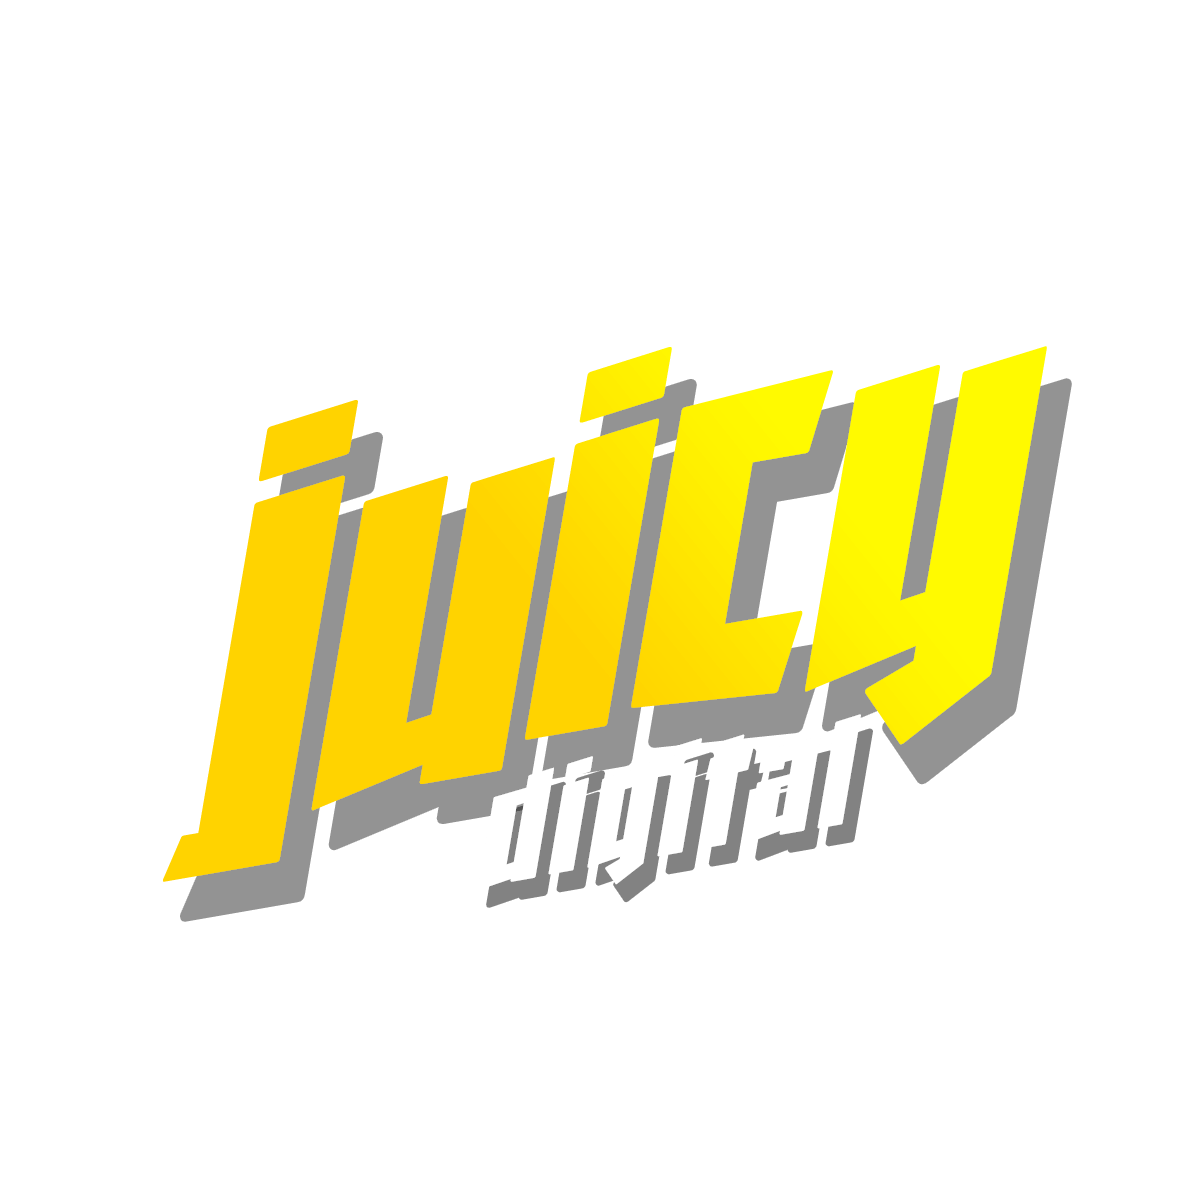 juicy-yellow